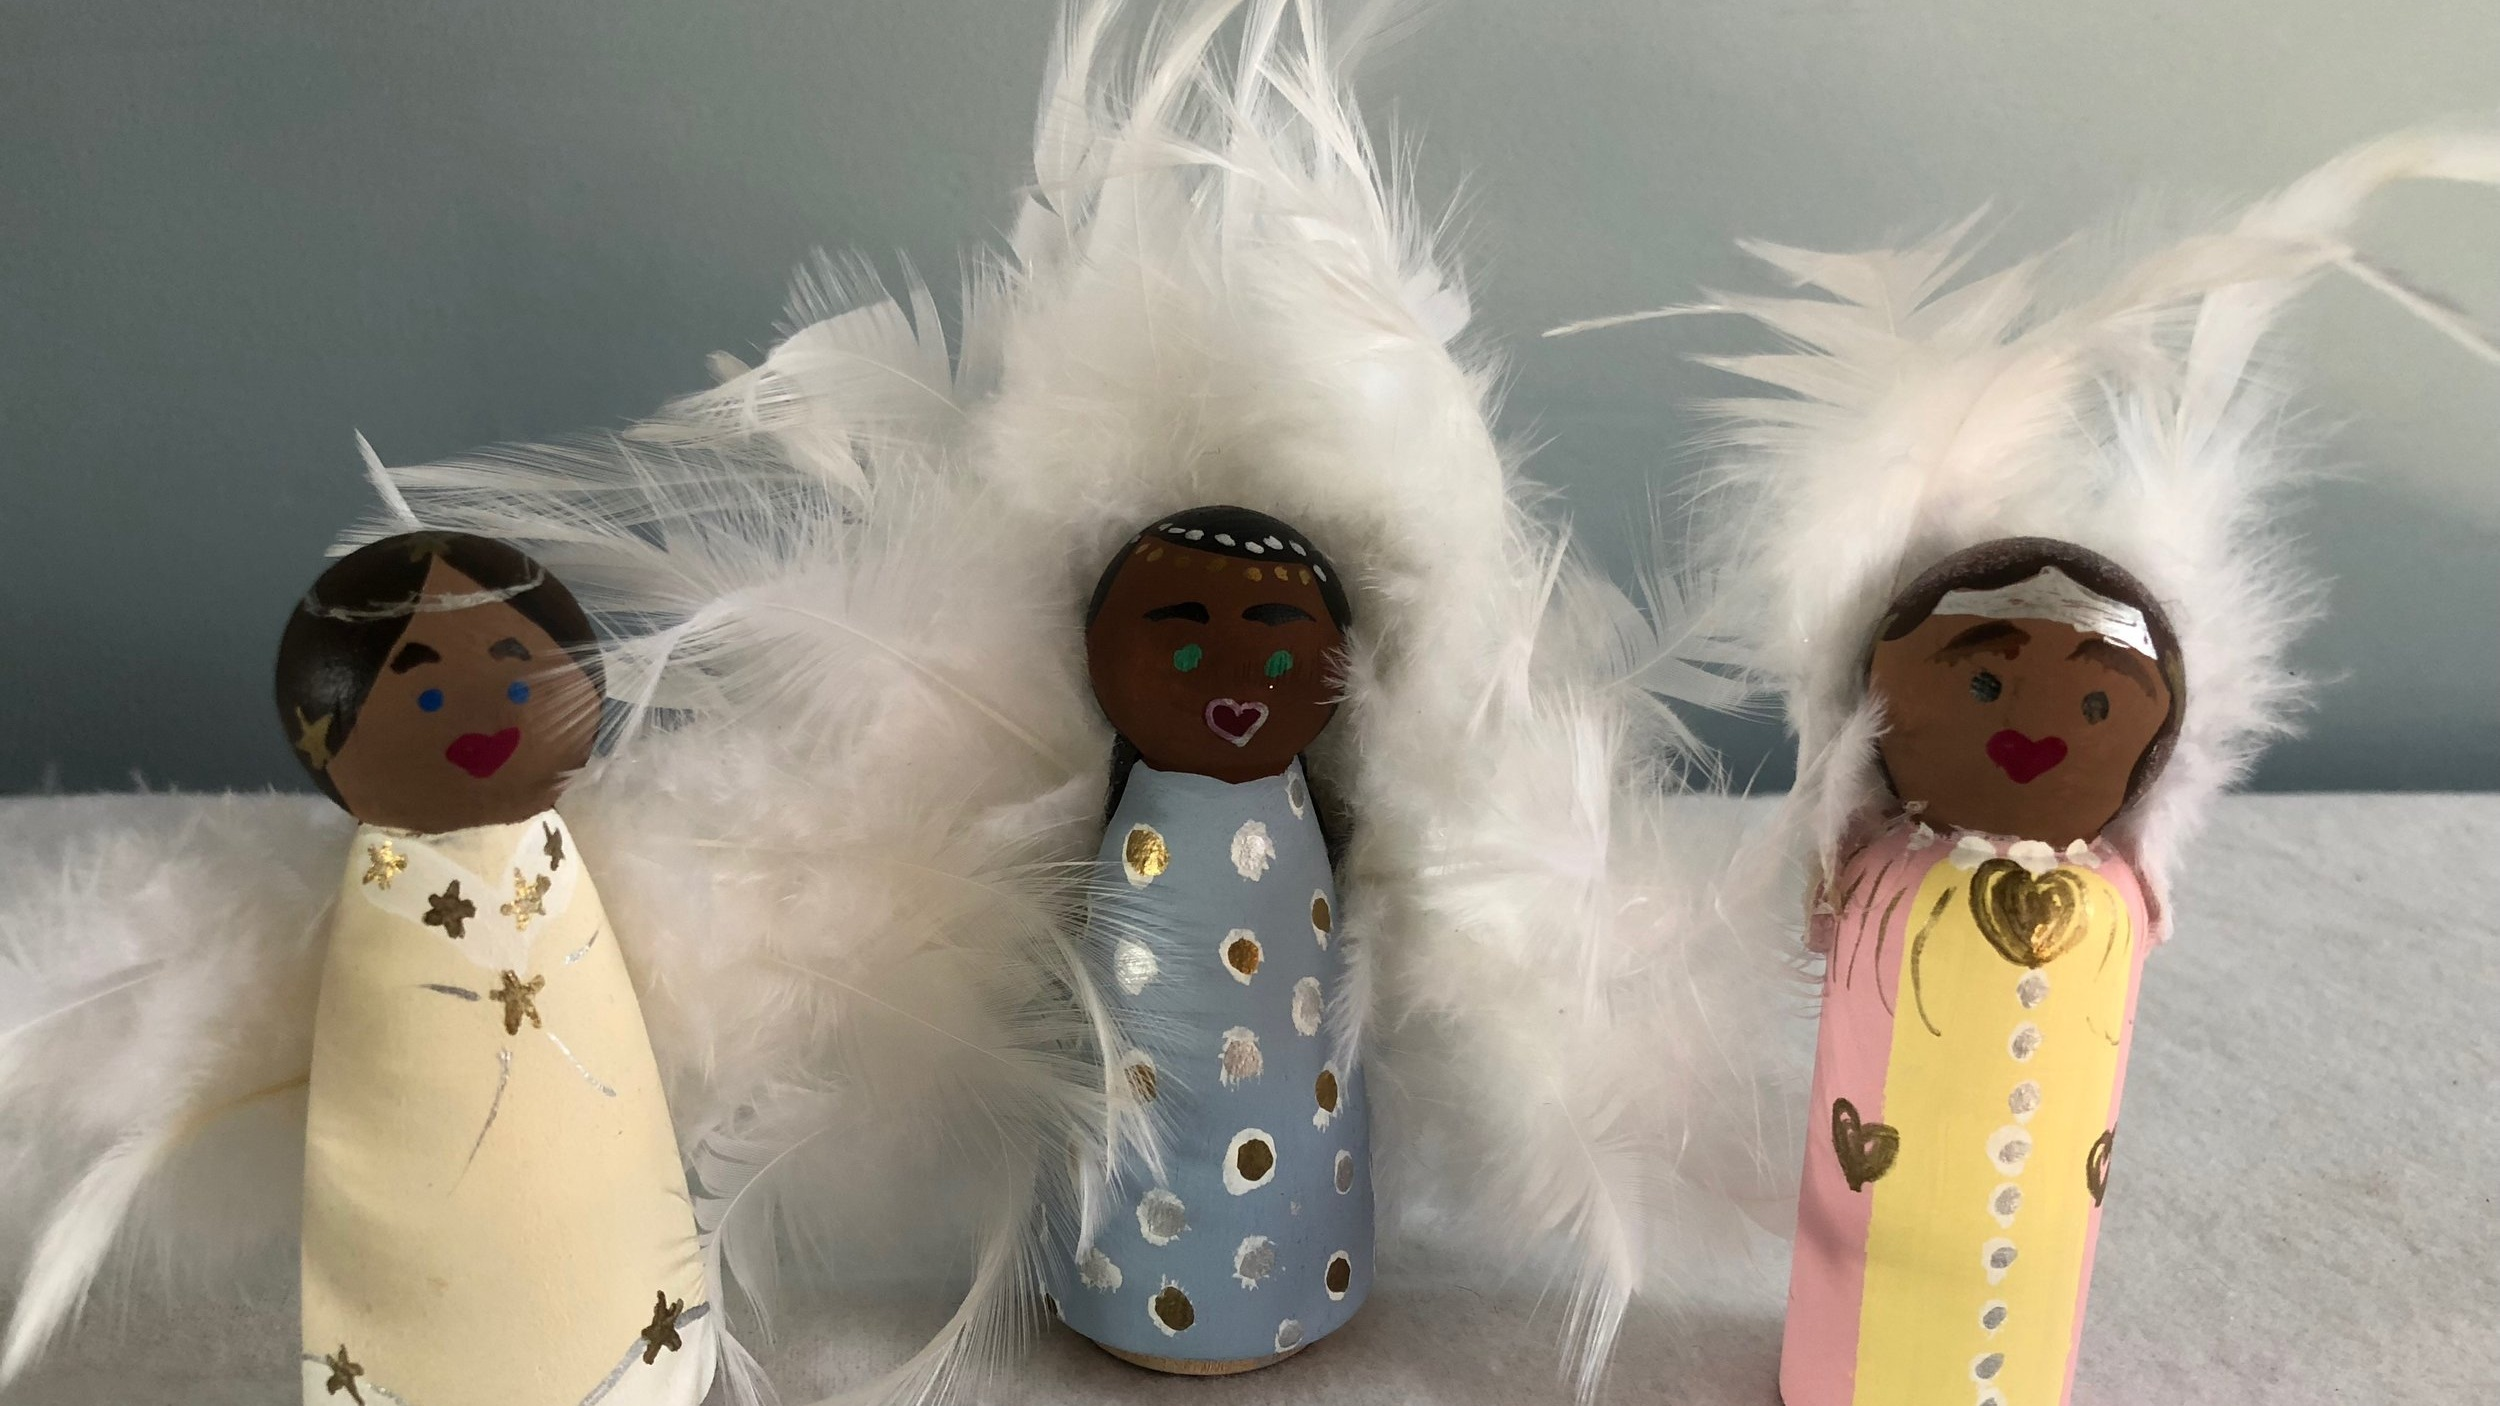 Three angels from my Sunday School/Children's Worship curriculum: The Big God Story of Love, Light, & Action.